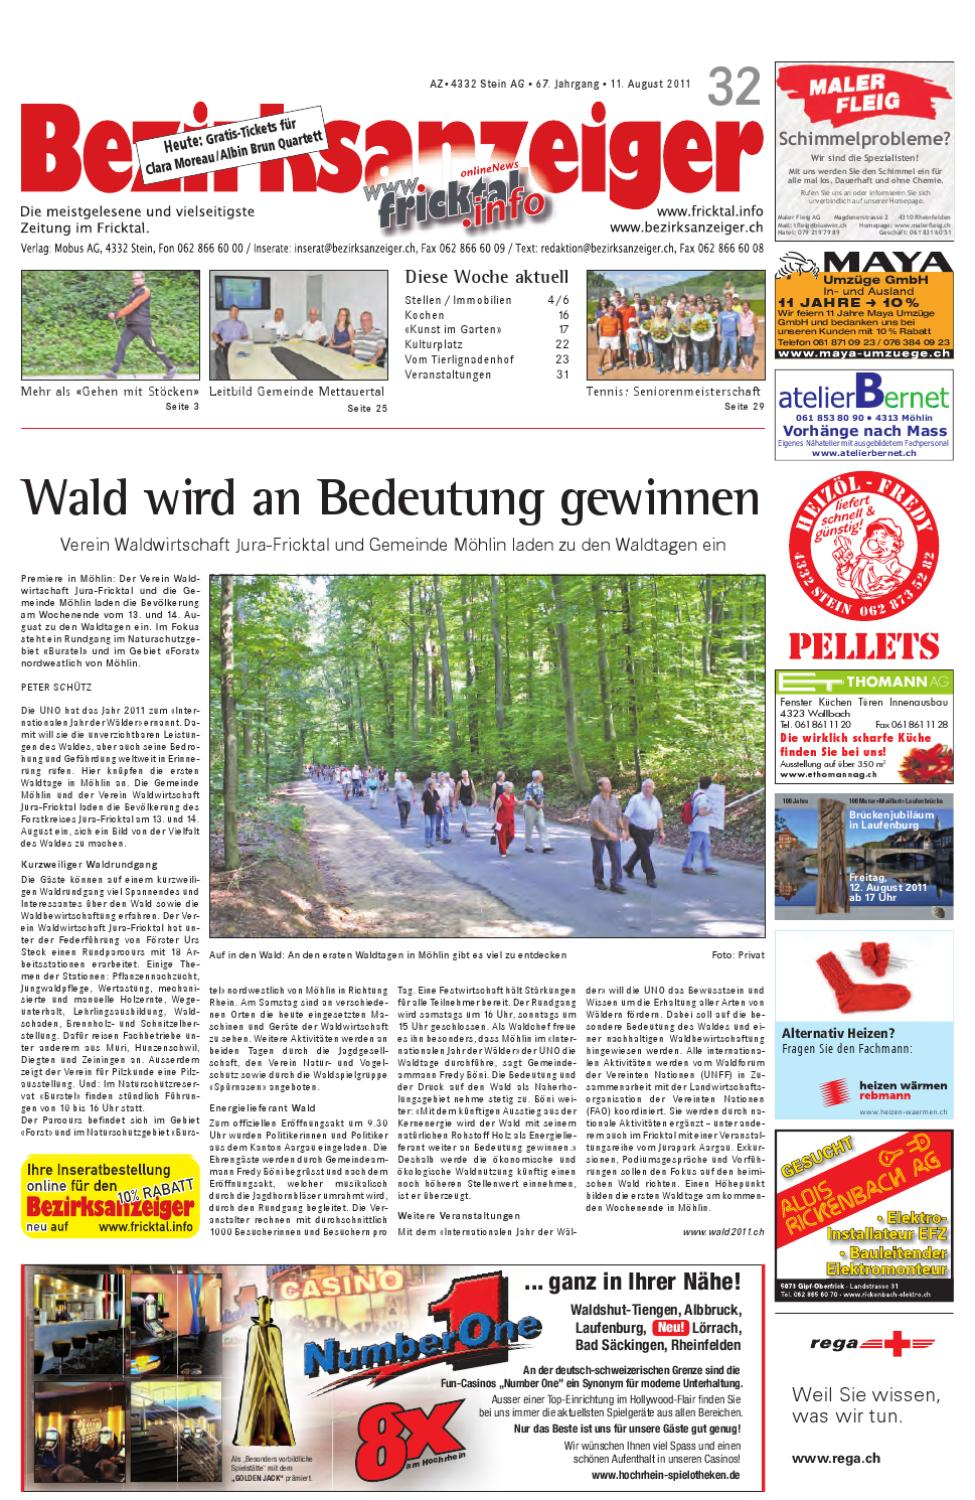 Bezirksanzeiger 2011 32 By Mobus Ag Issuu